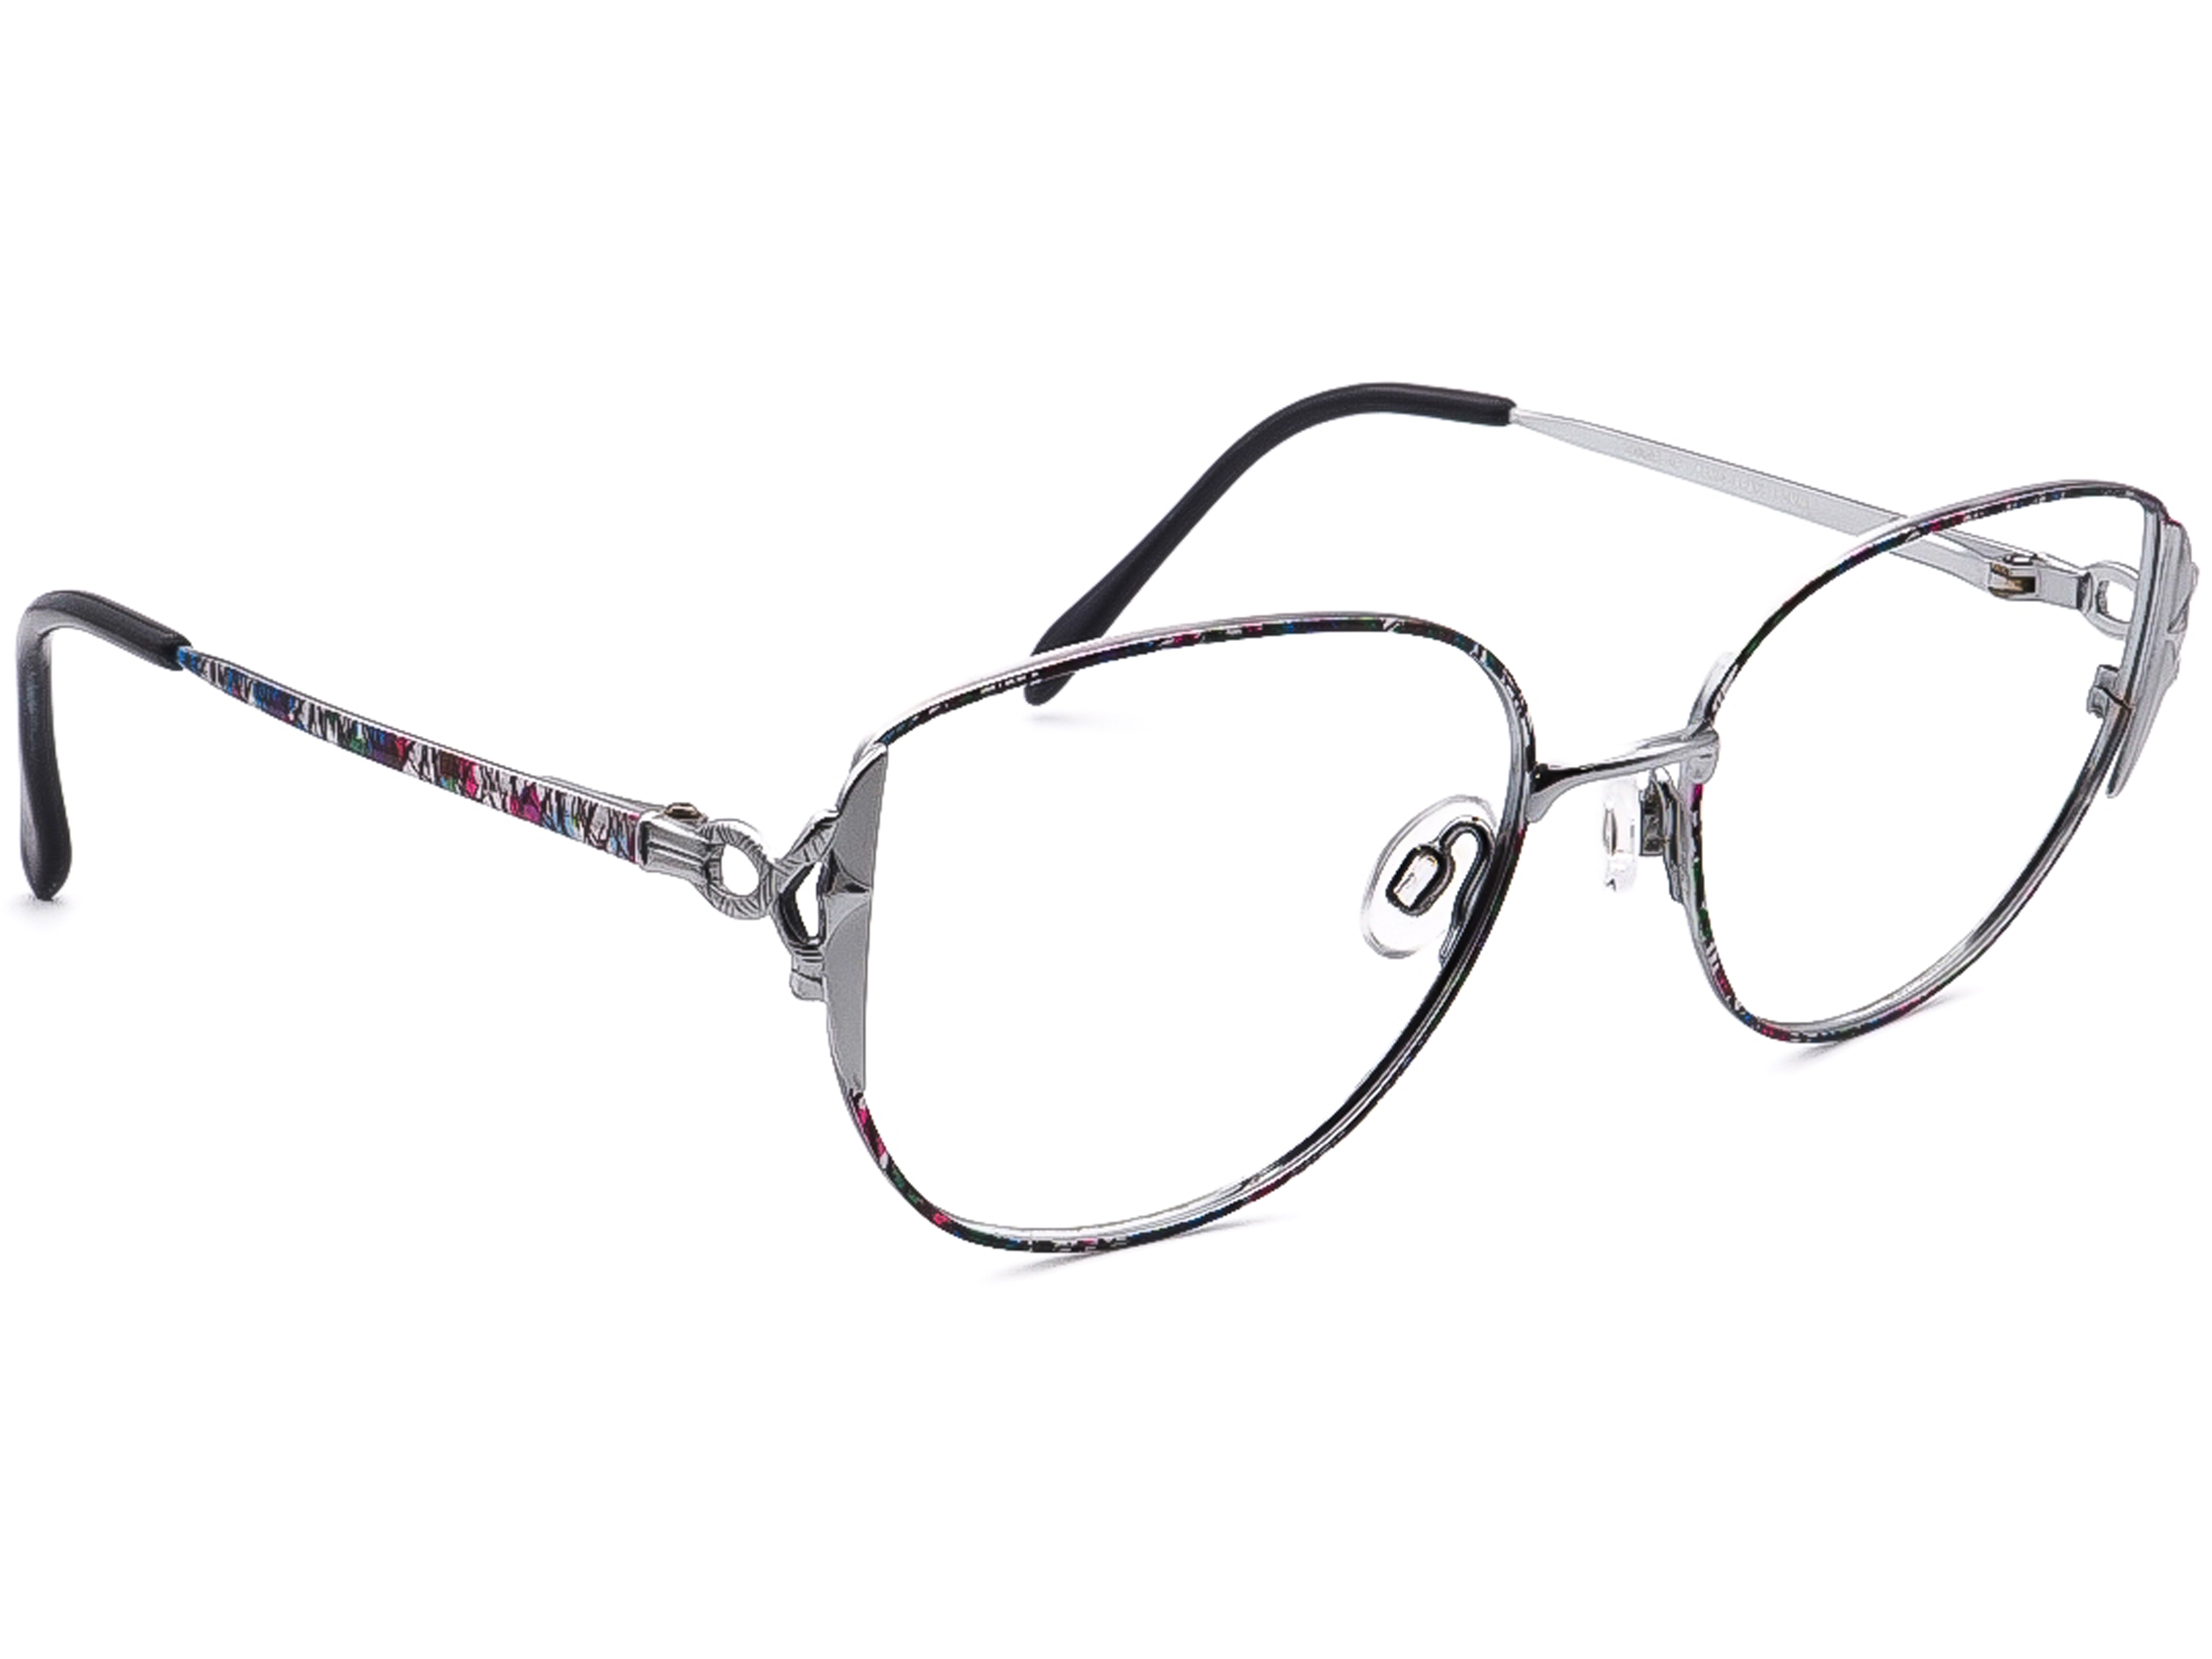 Charmant 4262 Color-OP Eyeglasses